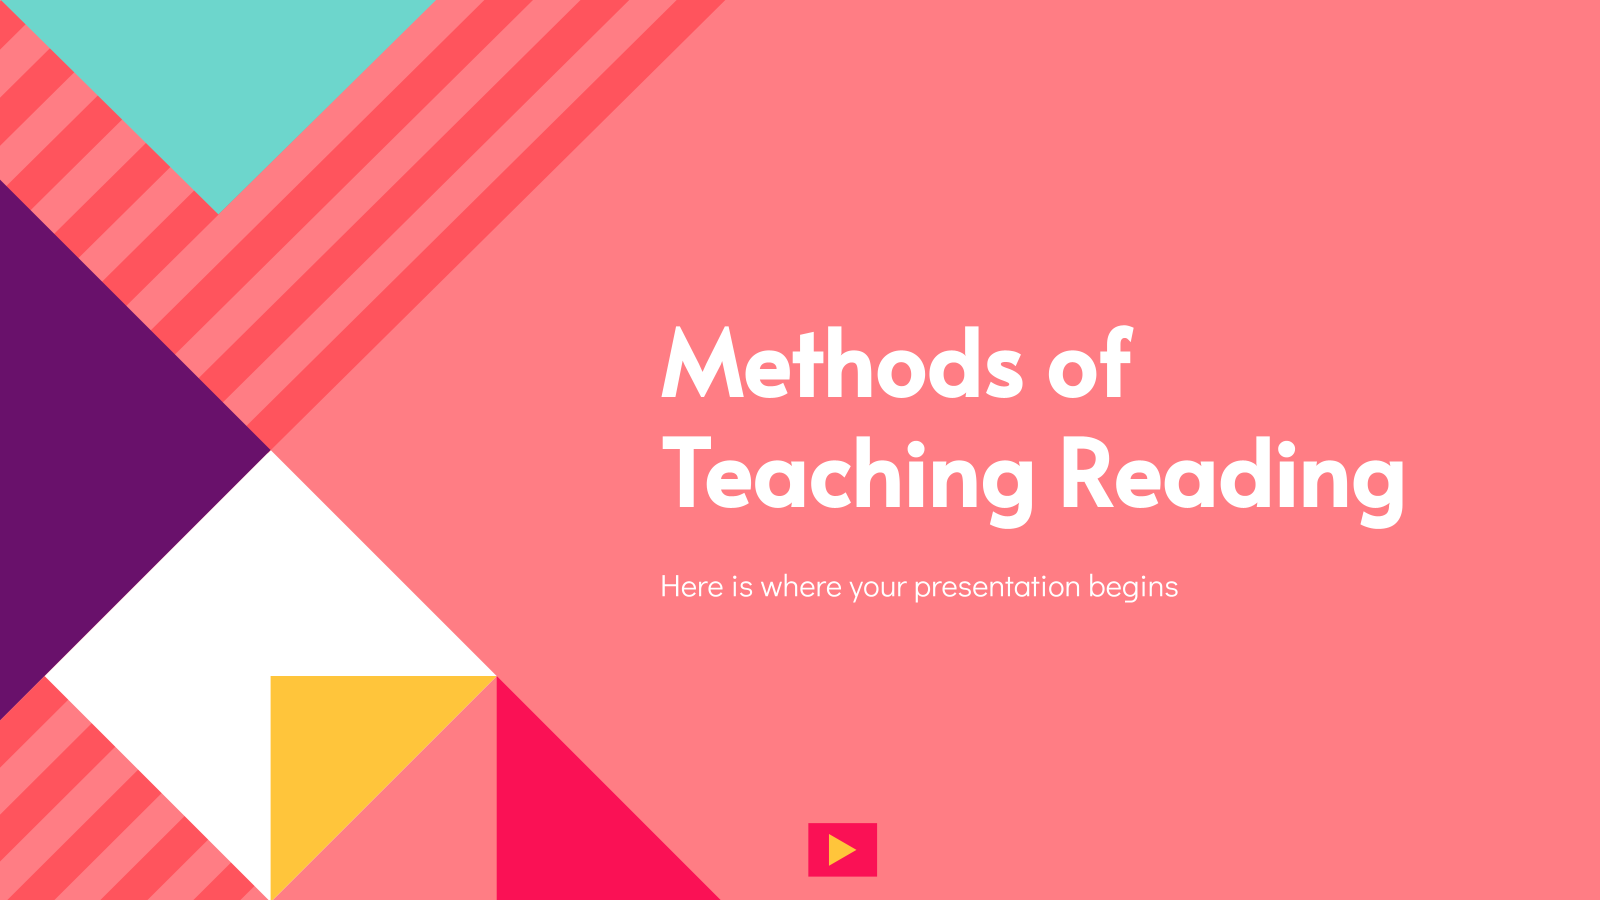 Methods of Teaching Reading presentation template